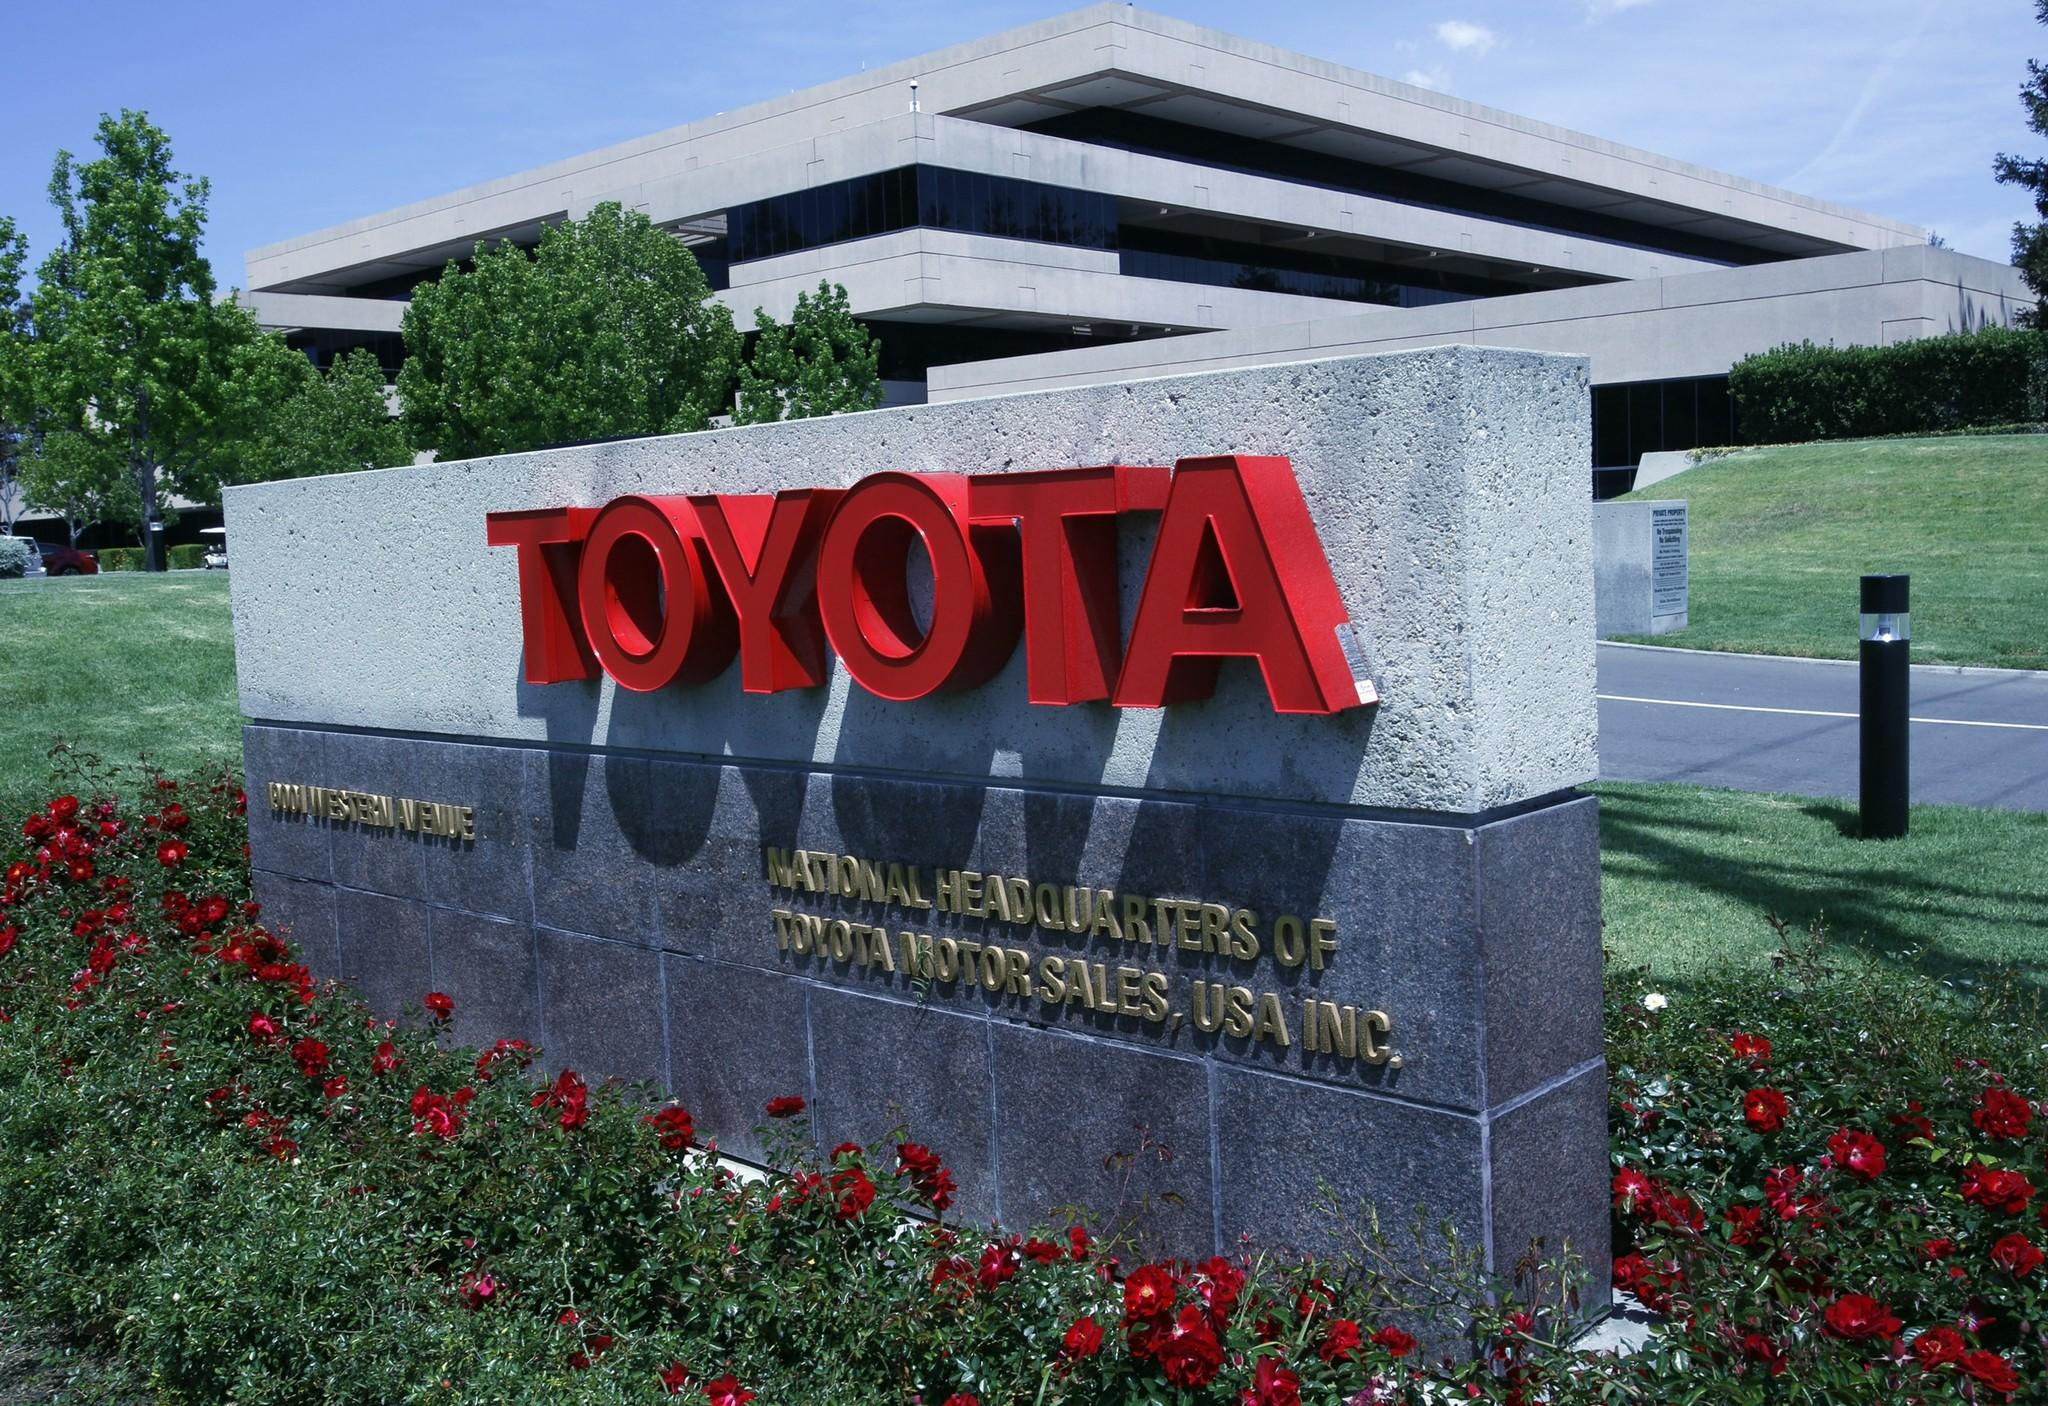 About 5,300 people work at Toyota's North American sales and marketing headquarters in Torrance.